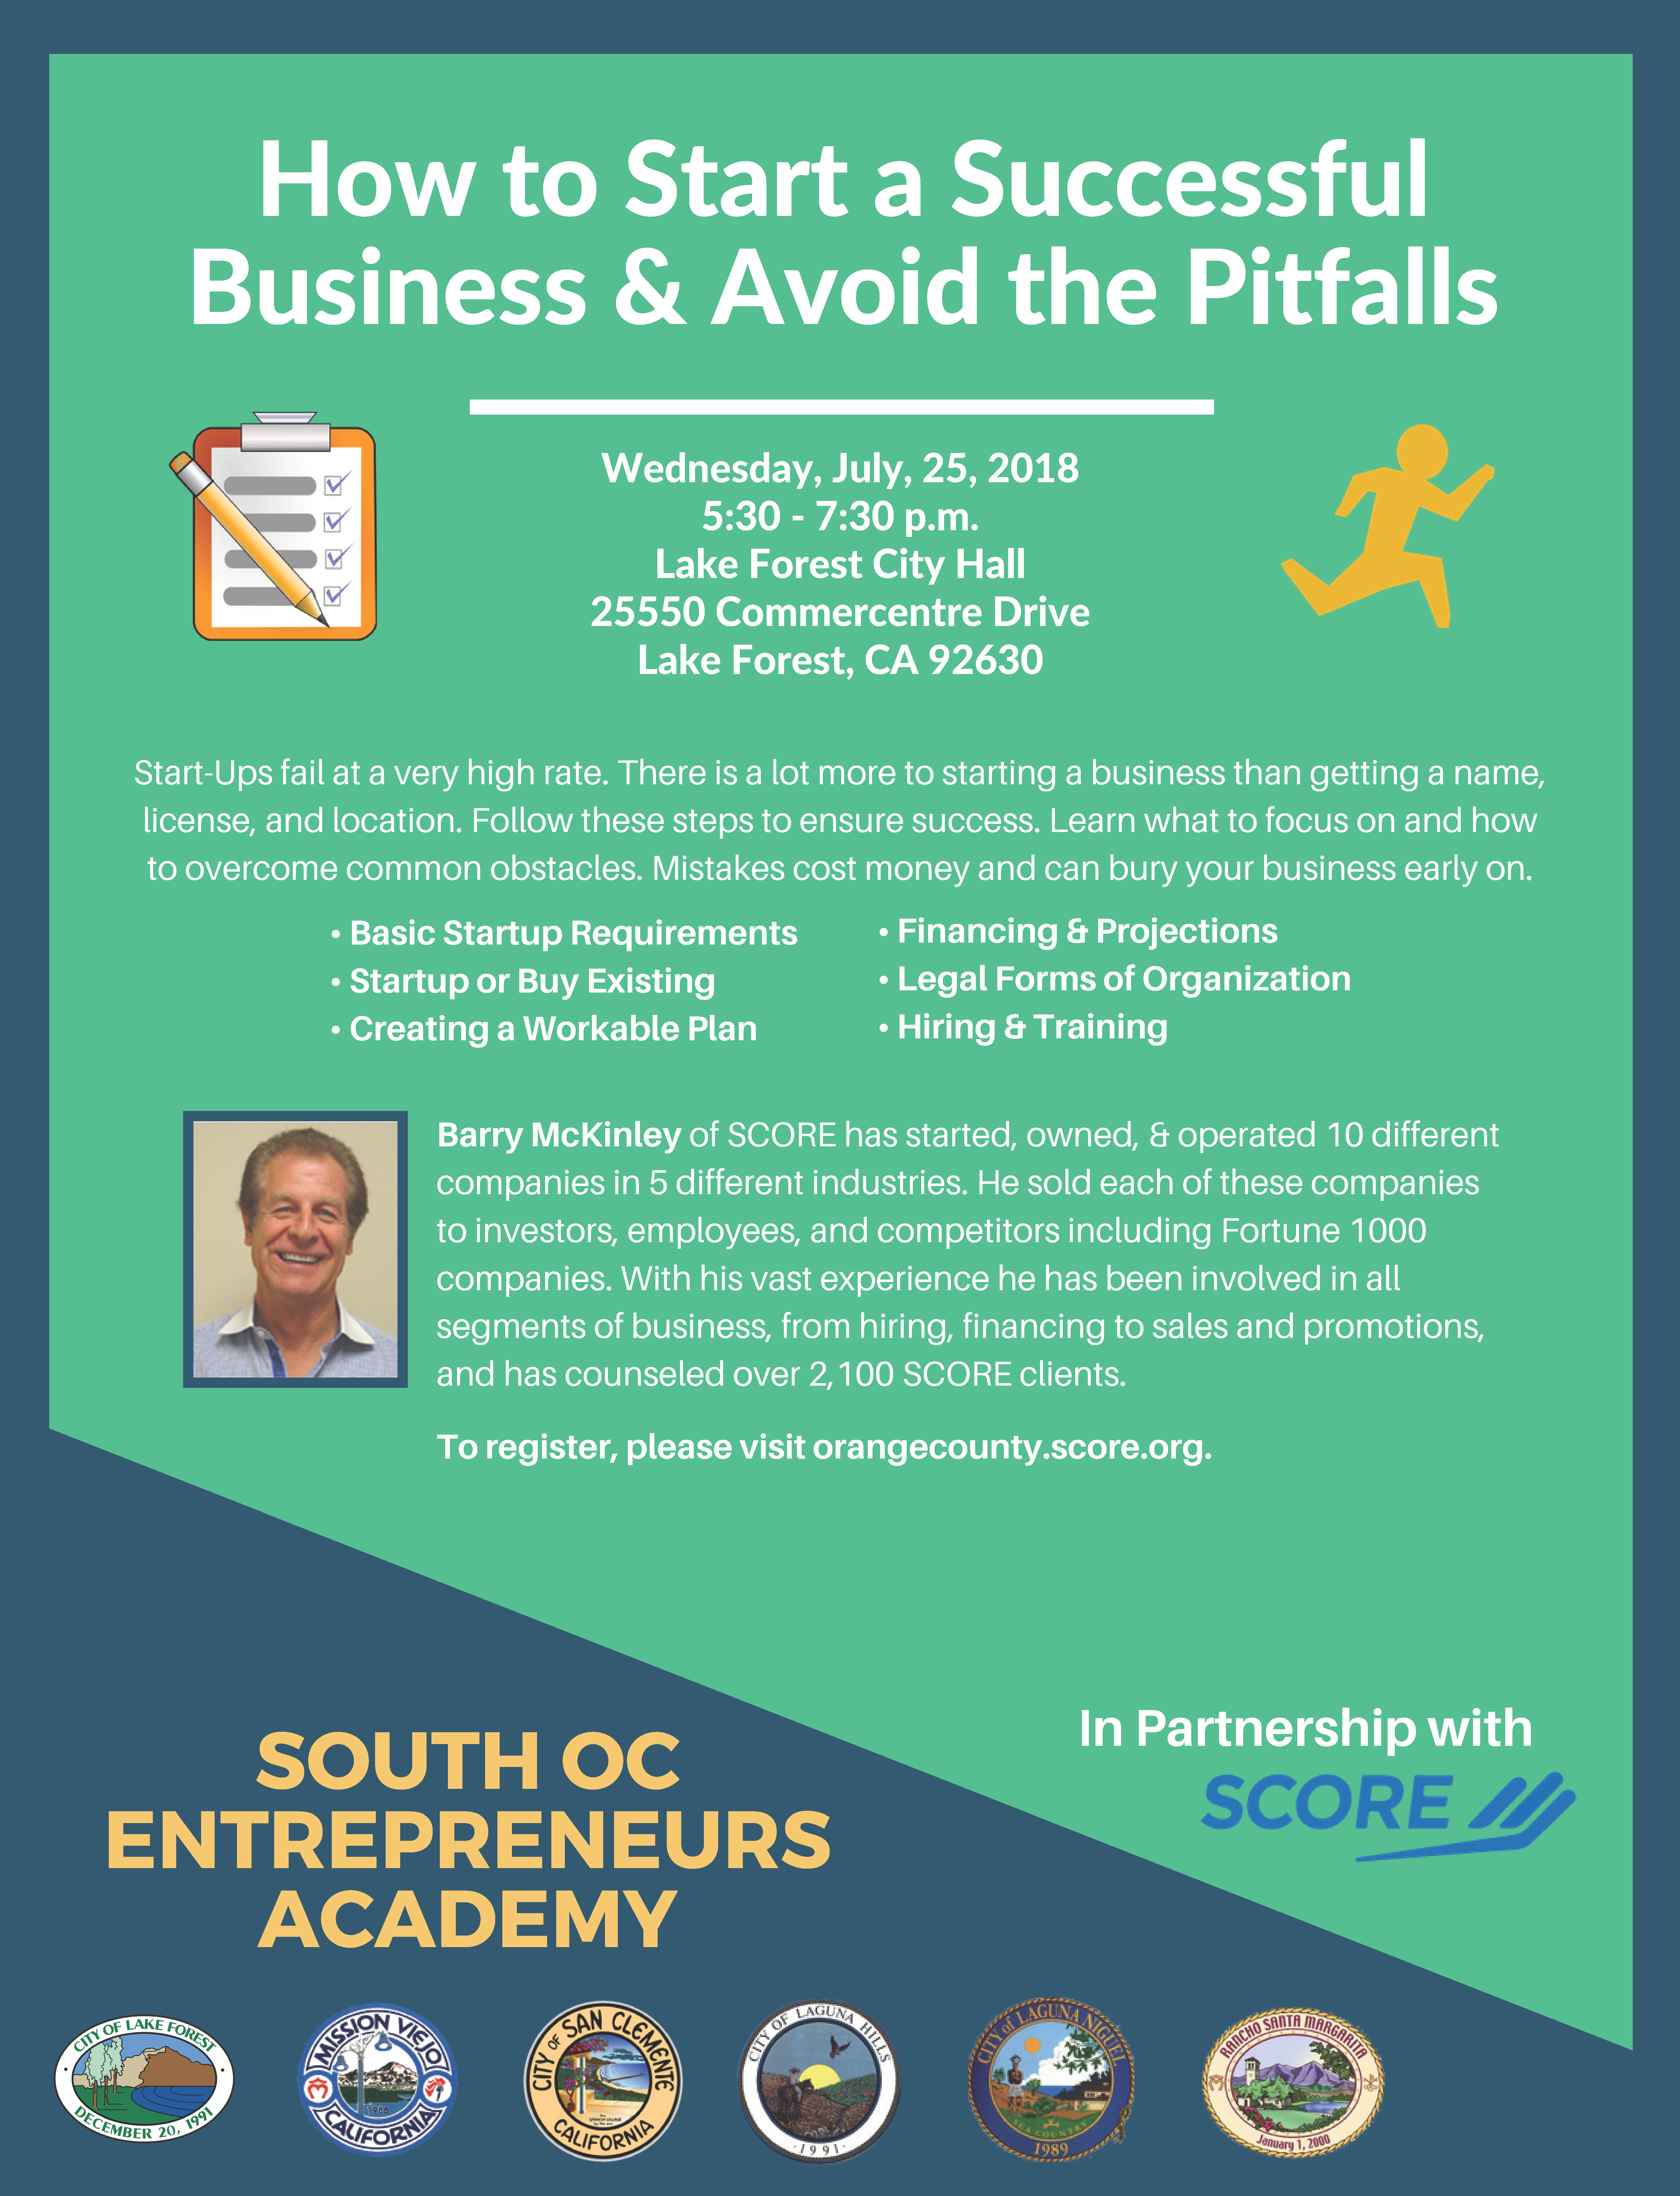 How To Start a Successful Business And Avoid the Pitfalls